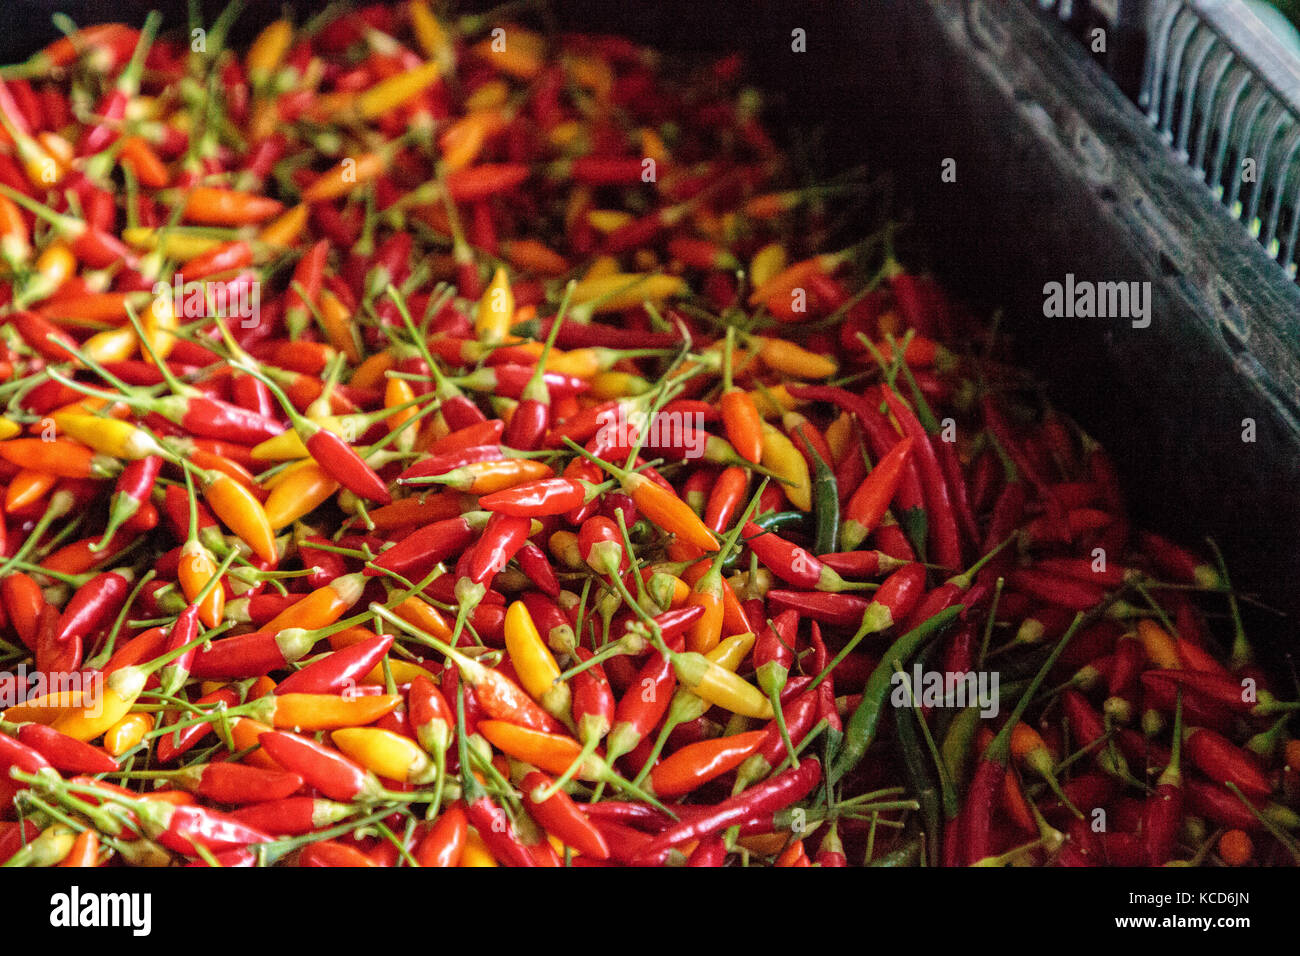 Mixed Colorful Red Orange And Yellow Thai Chili Peppers Grown In An